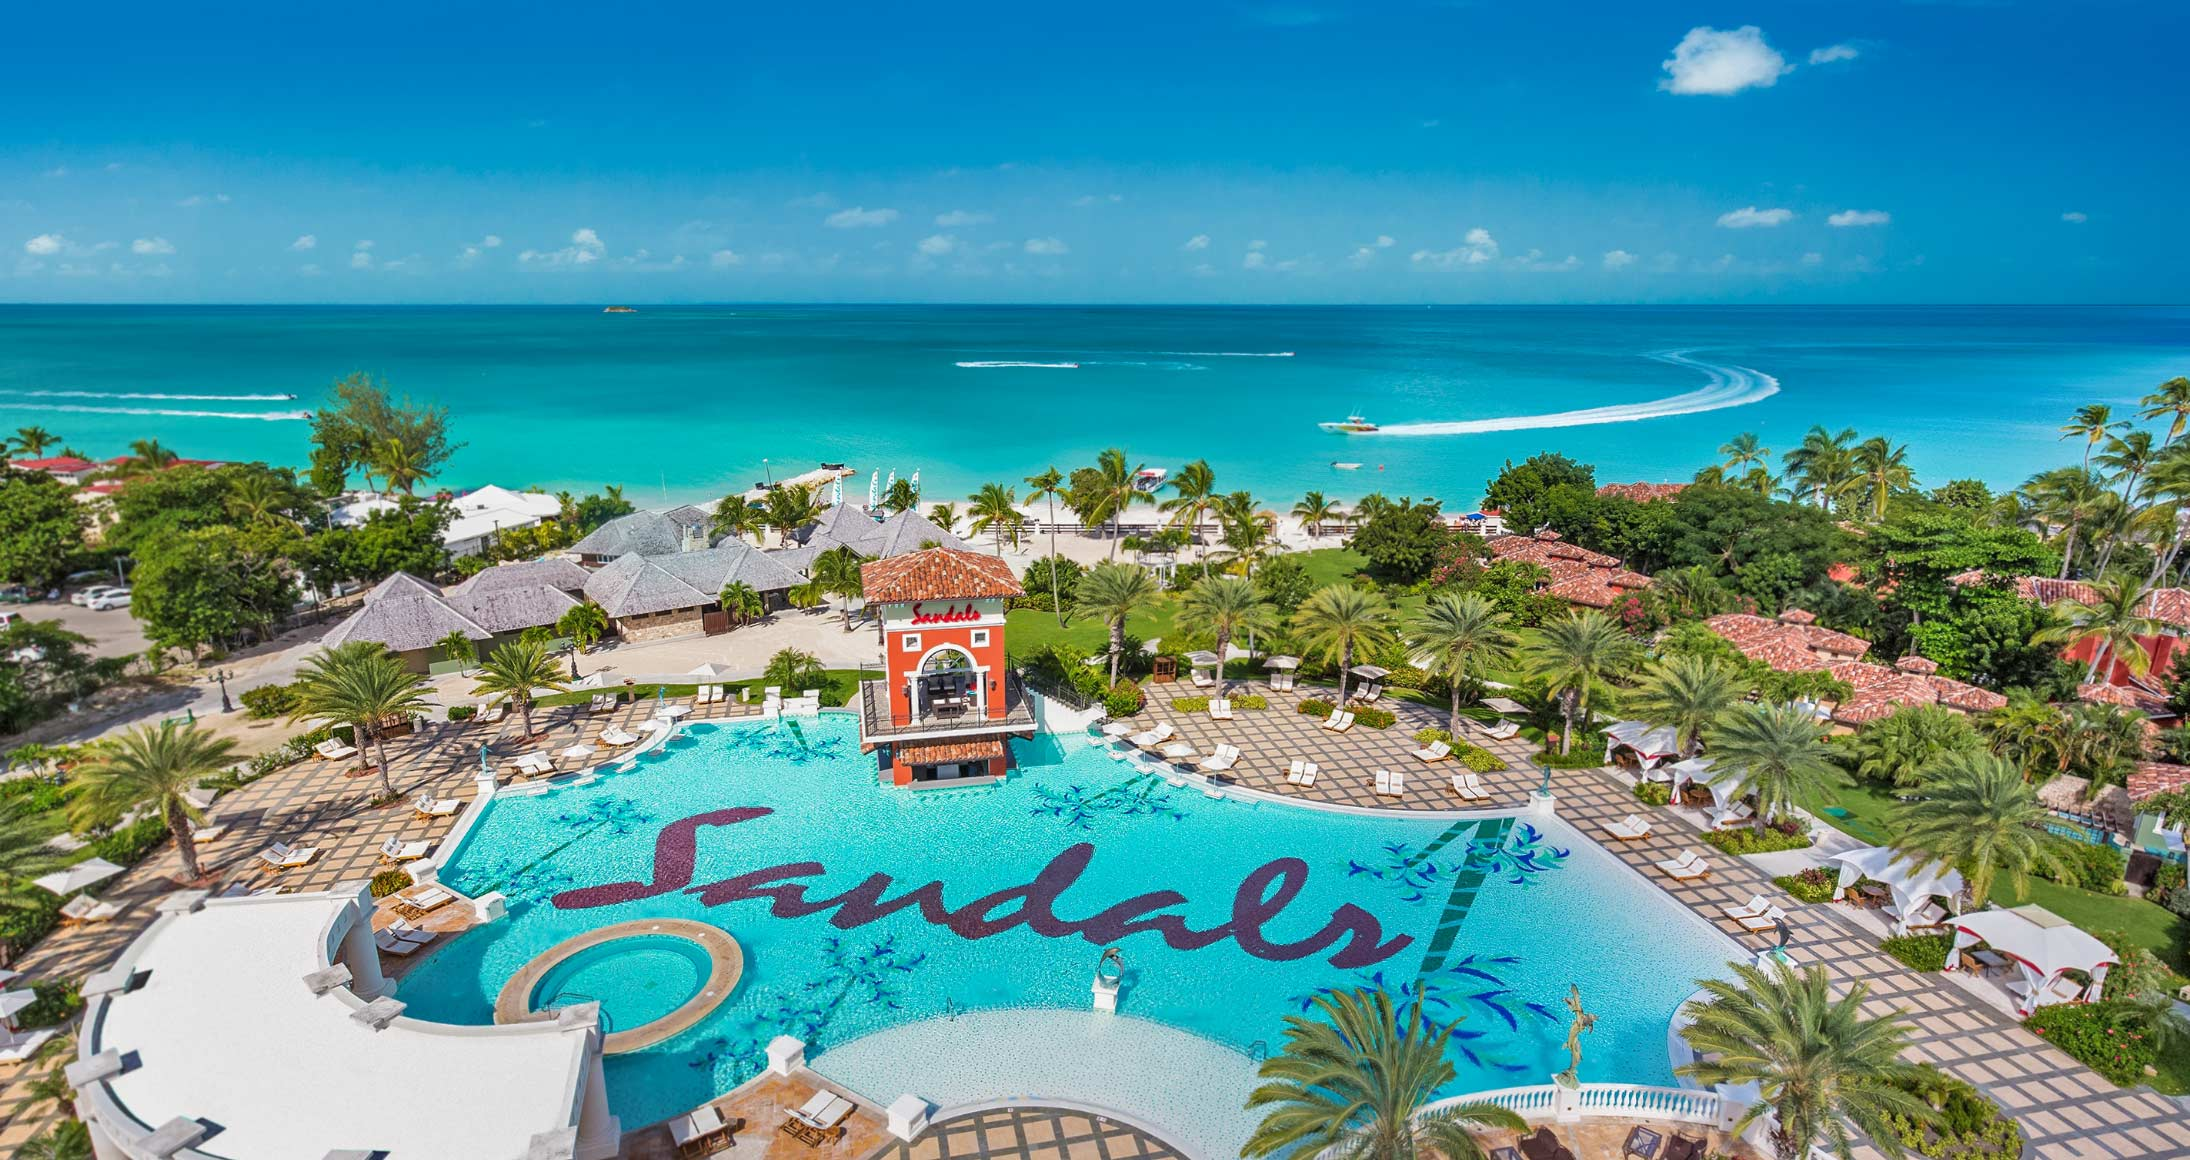 sandals aerial pool beach ocean boat resort